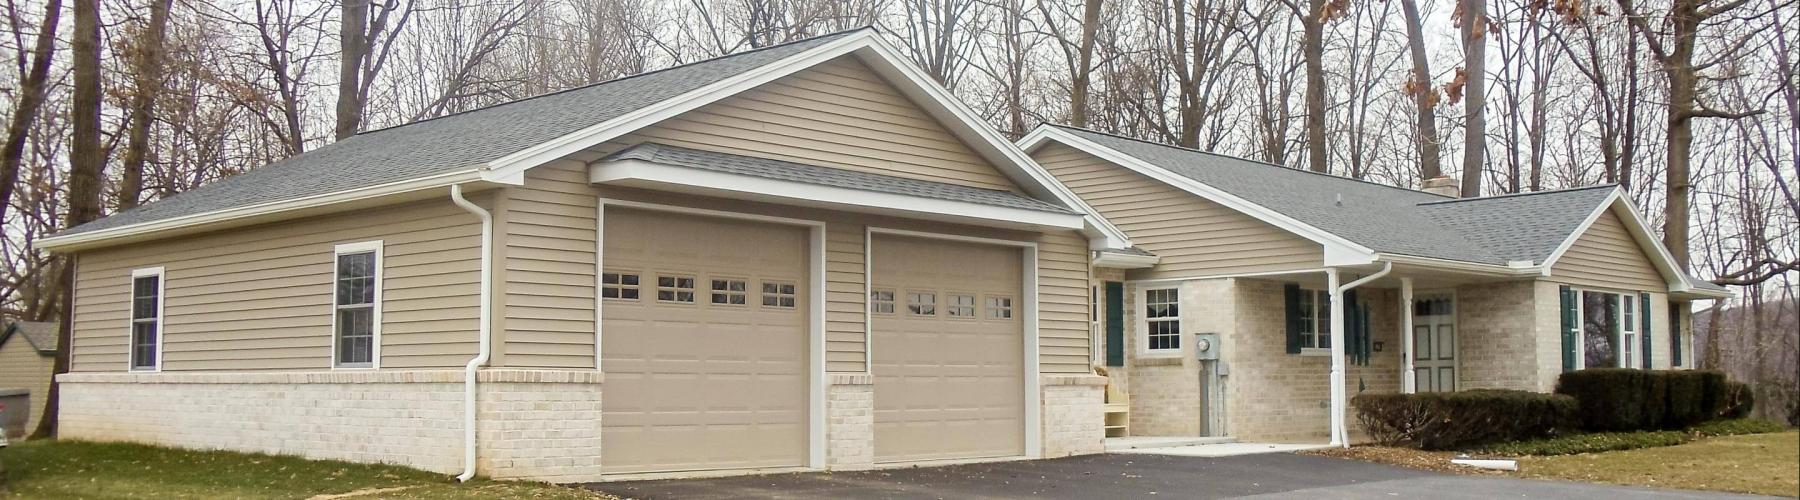 Ephrata, Pa Garage Renovation